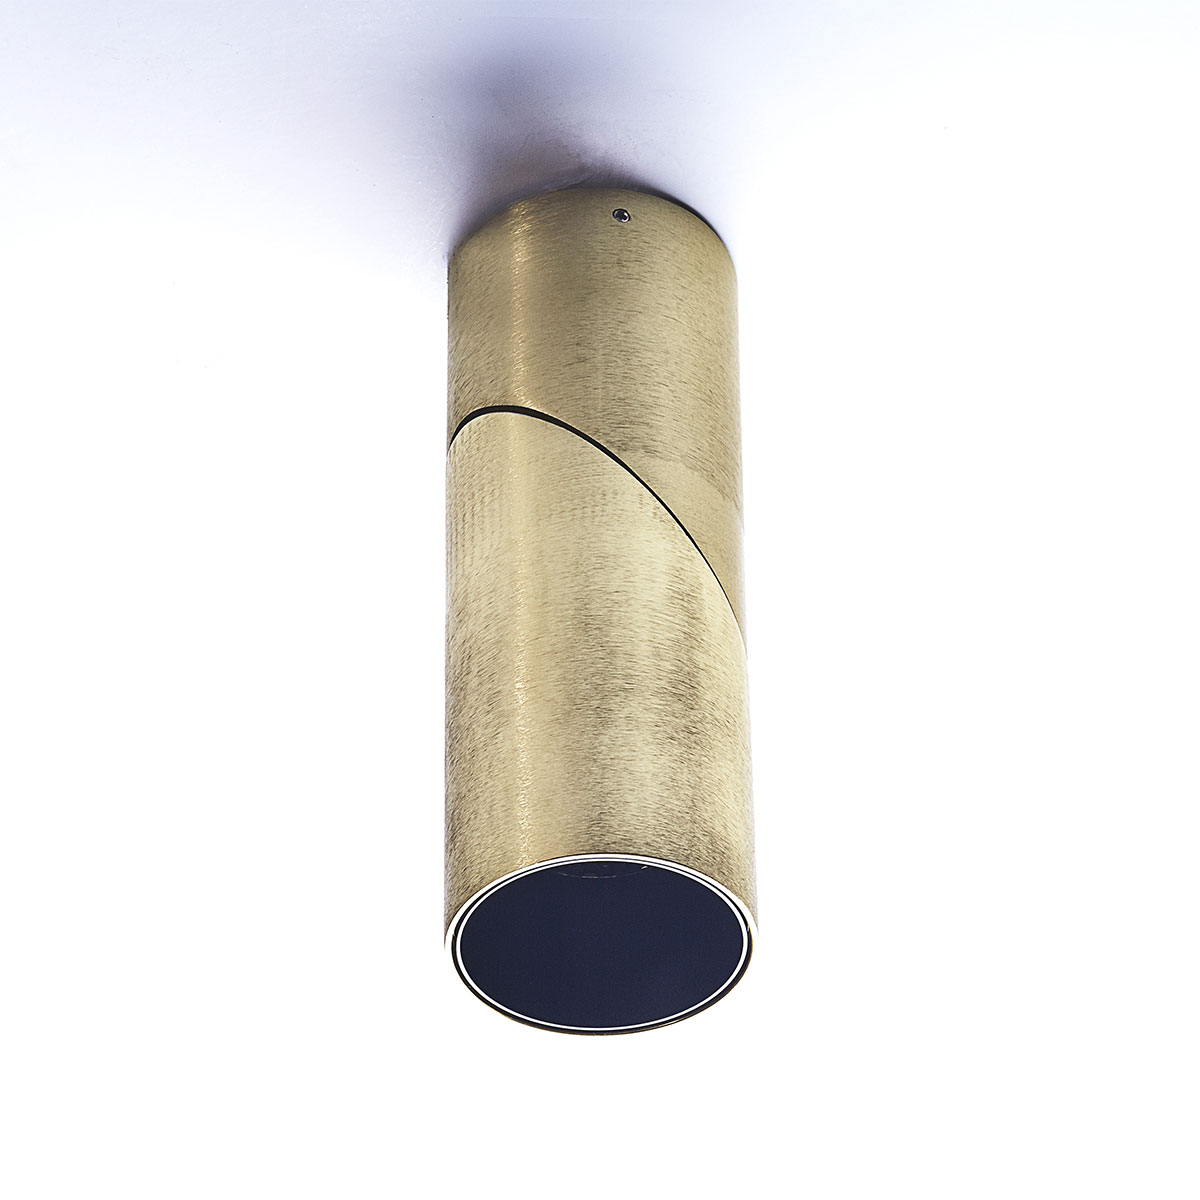 Split tube 23w polished brass 00002 1200x1200